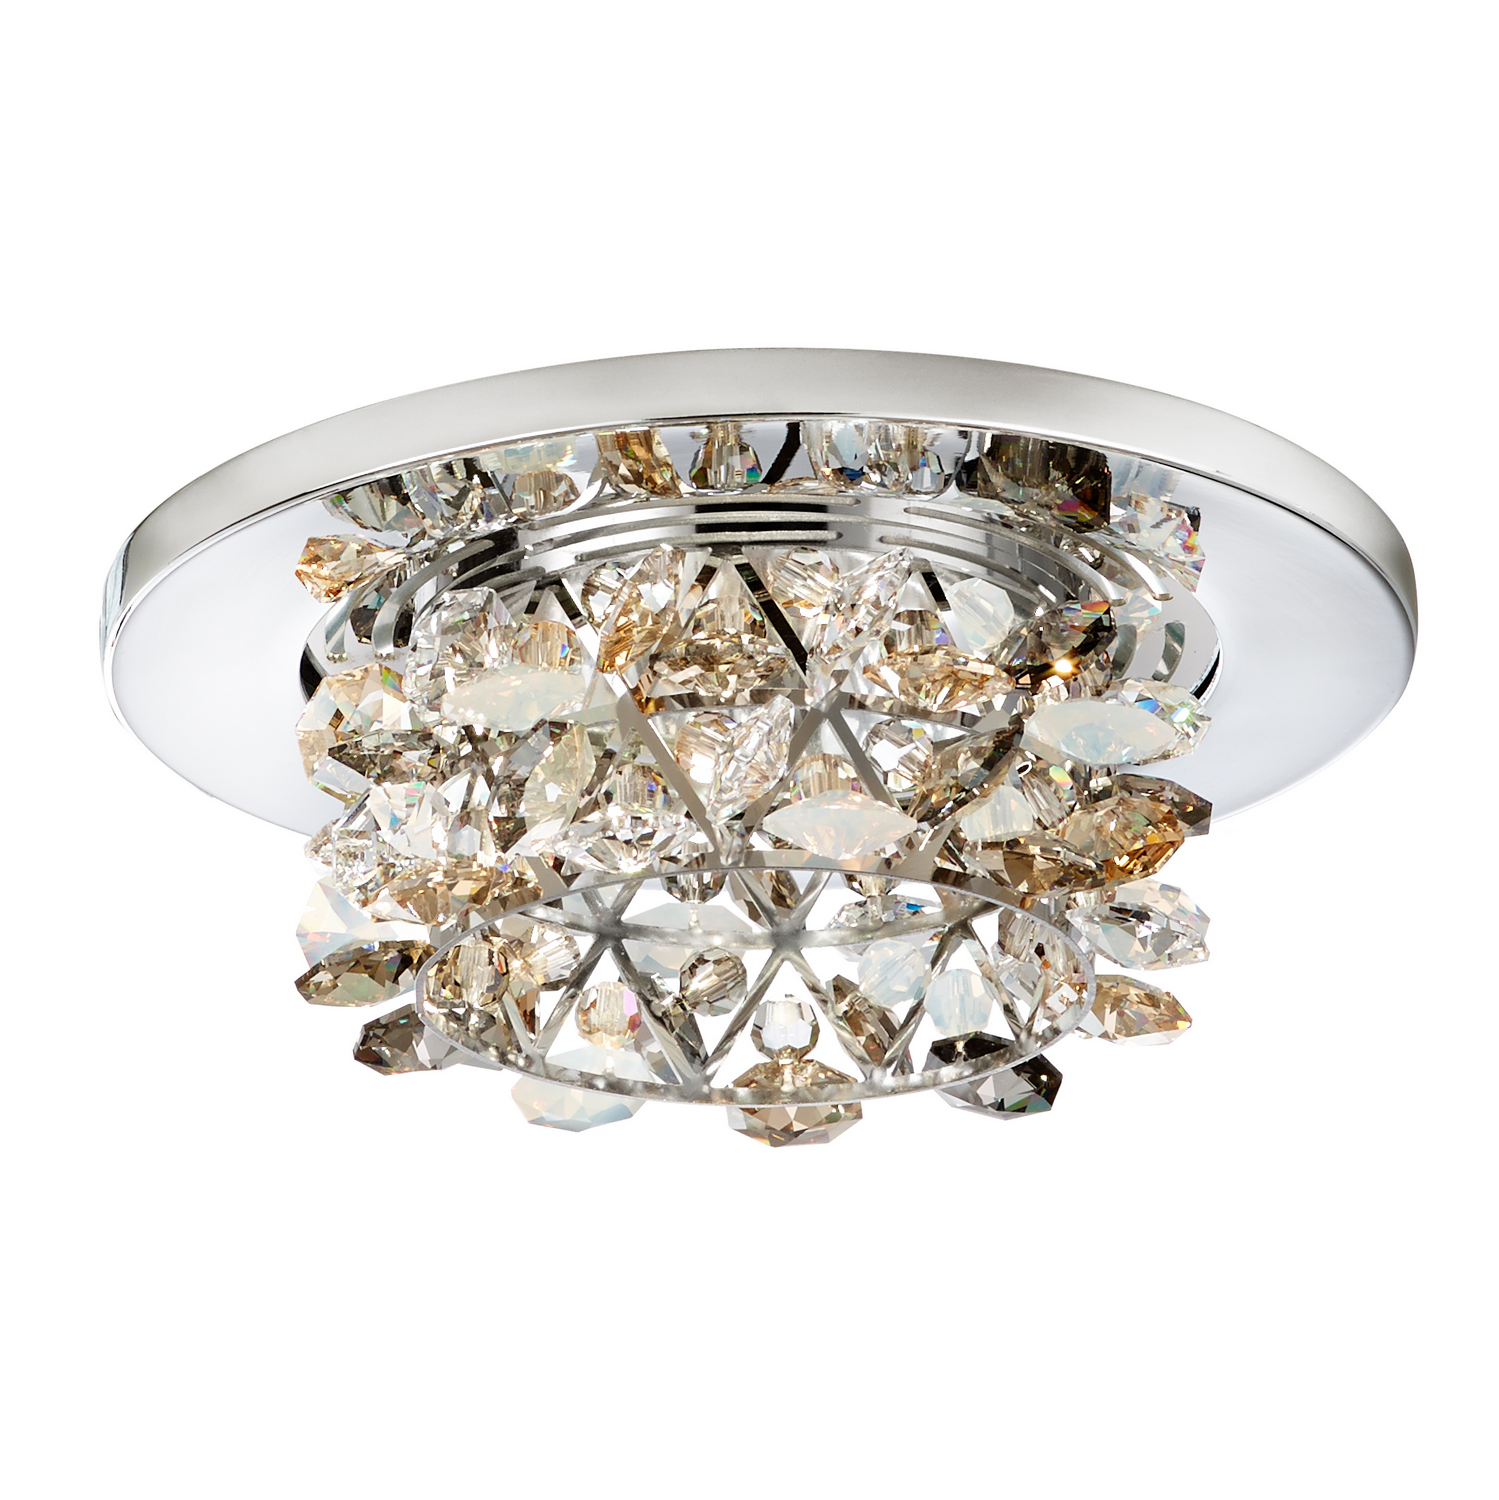 recessed lighting ceiling lights at yale appliance and lighting in